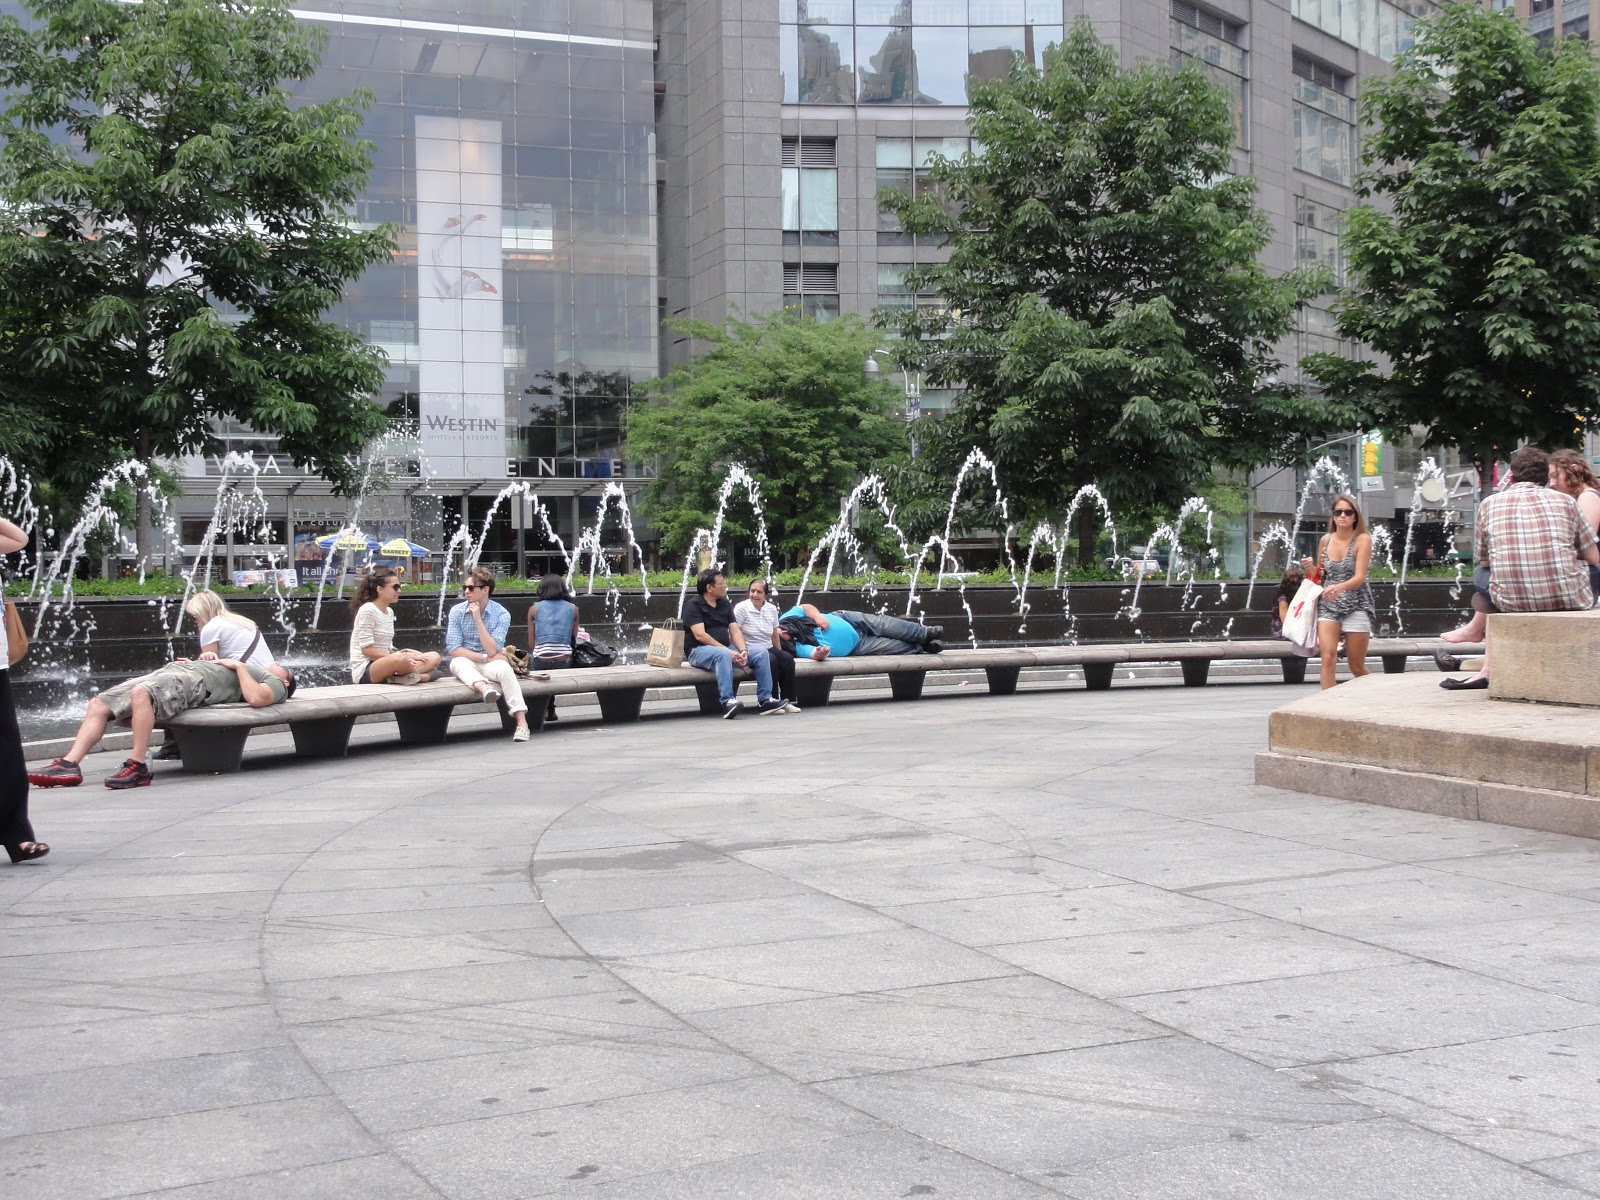 Investigating urban space in new york sitting requirements for urban spaces - Small urban spaces image ...